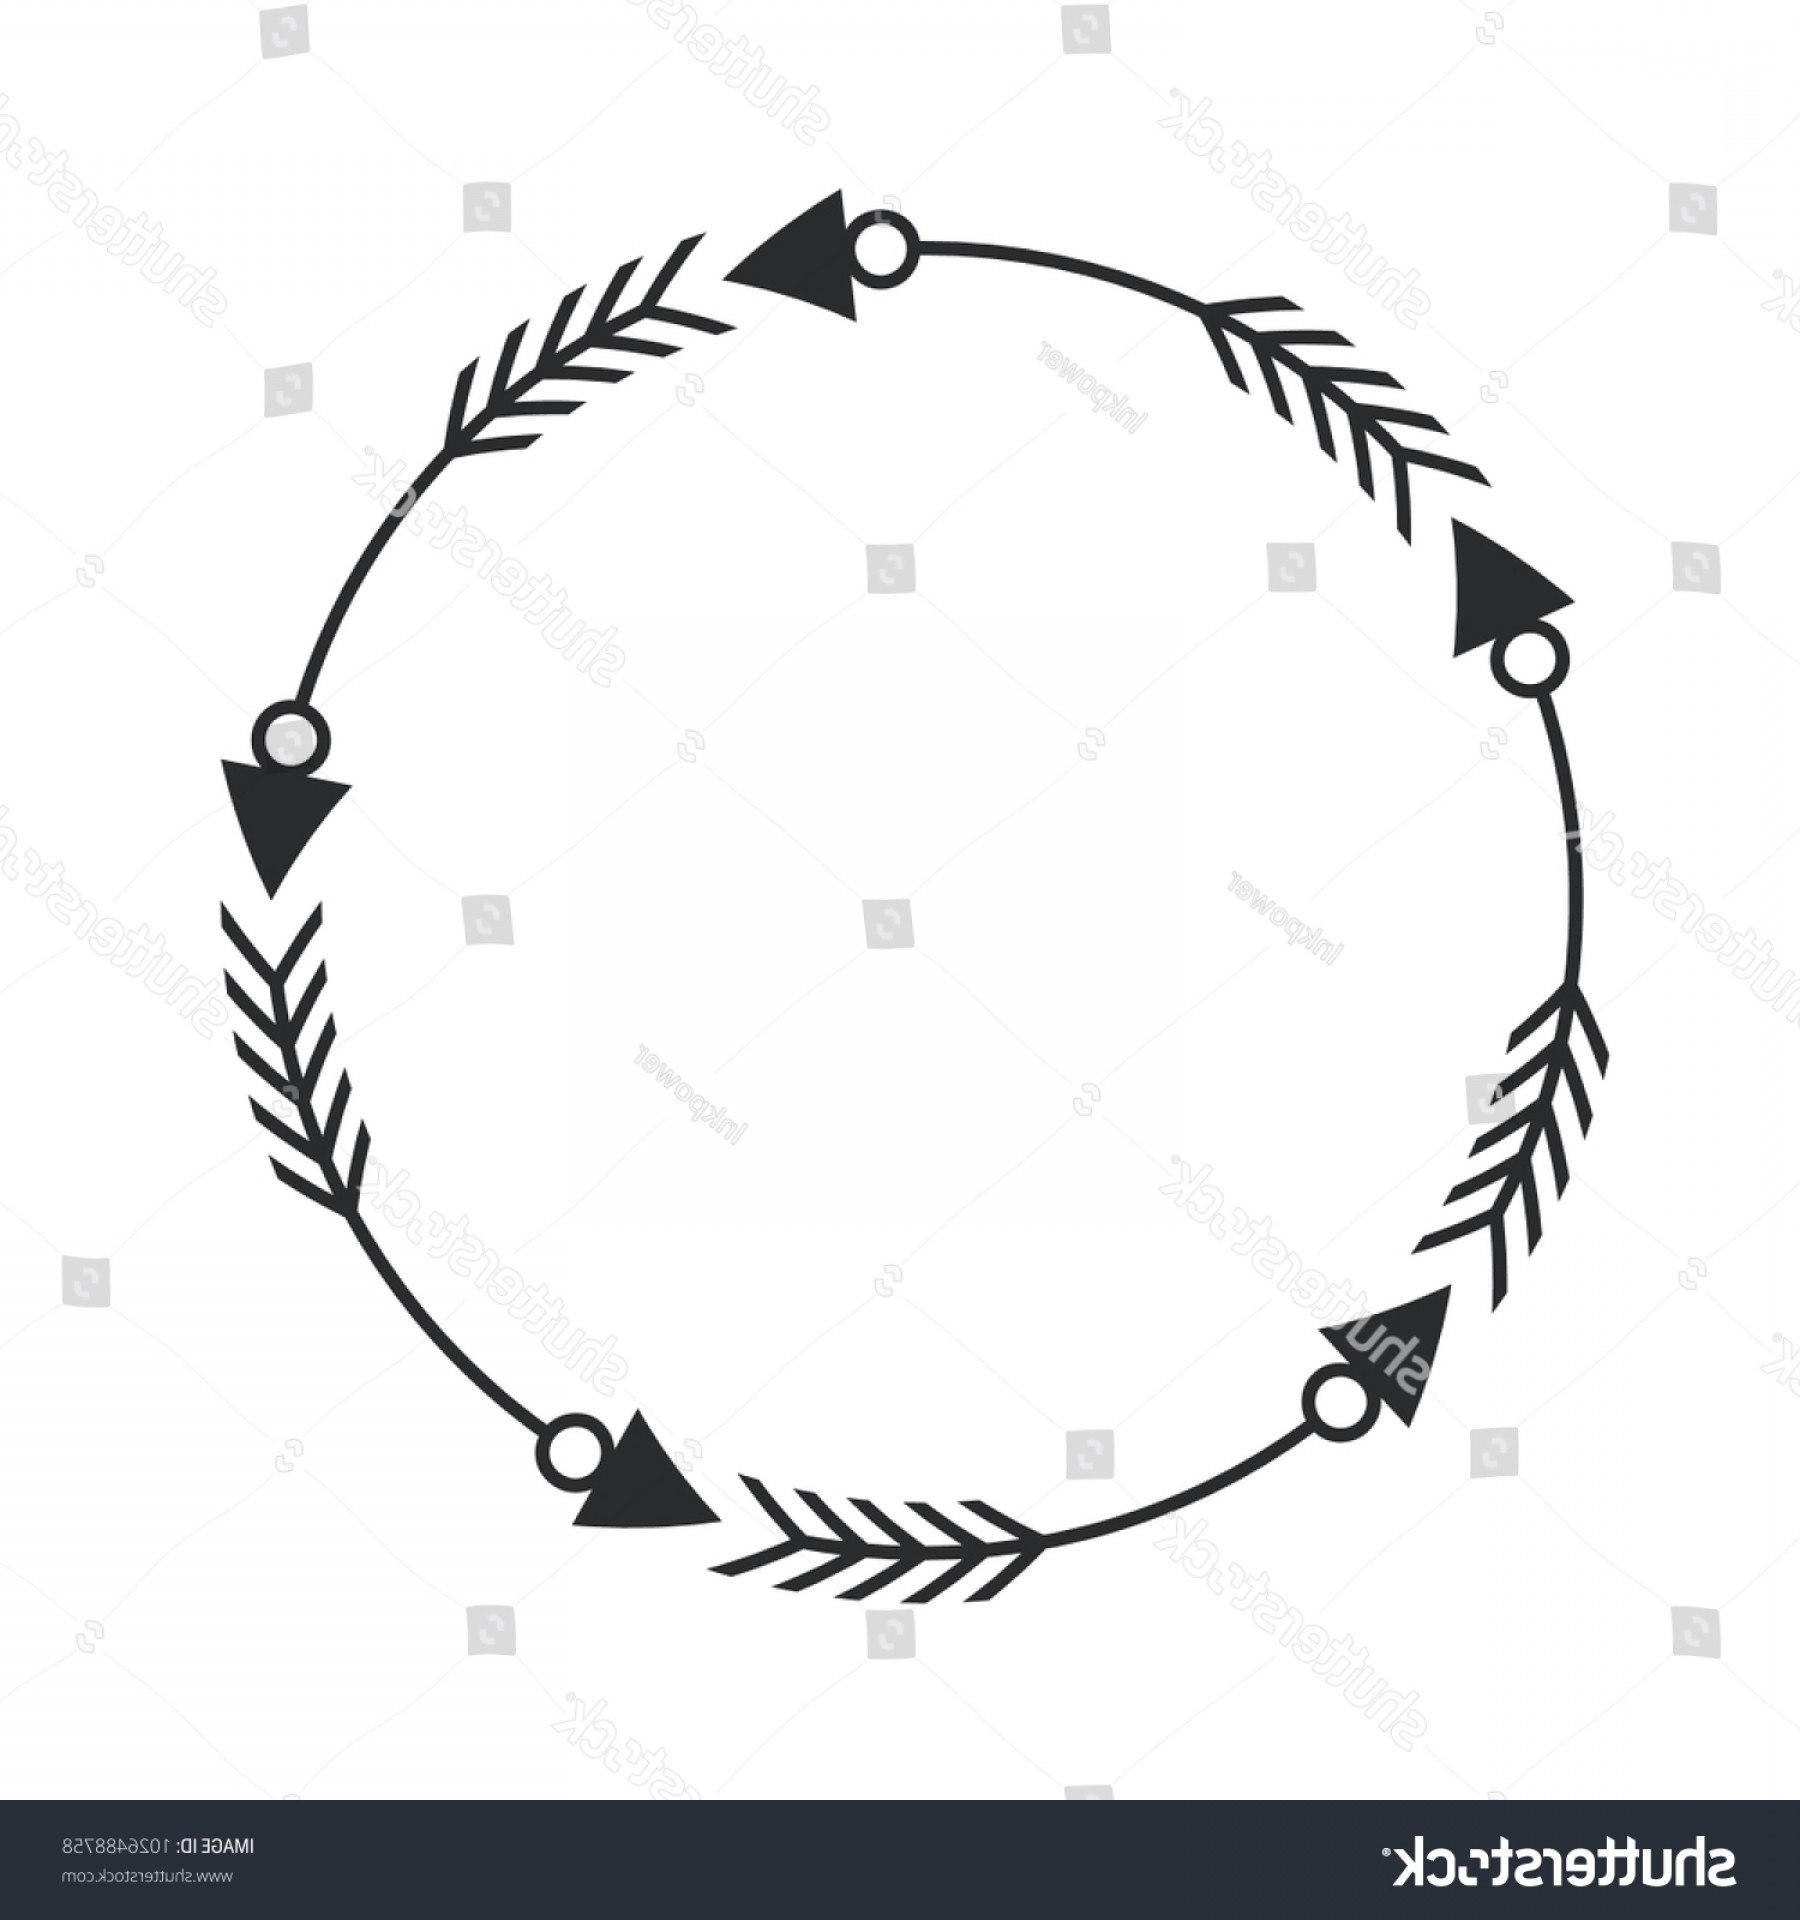 Vector Boho Arrow Strength: Arrow Circle Frame Graphic Vetor Design